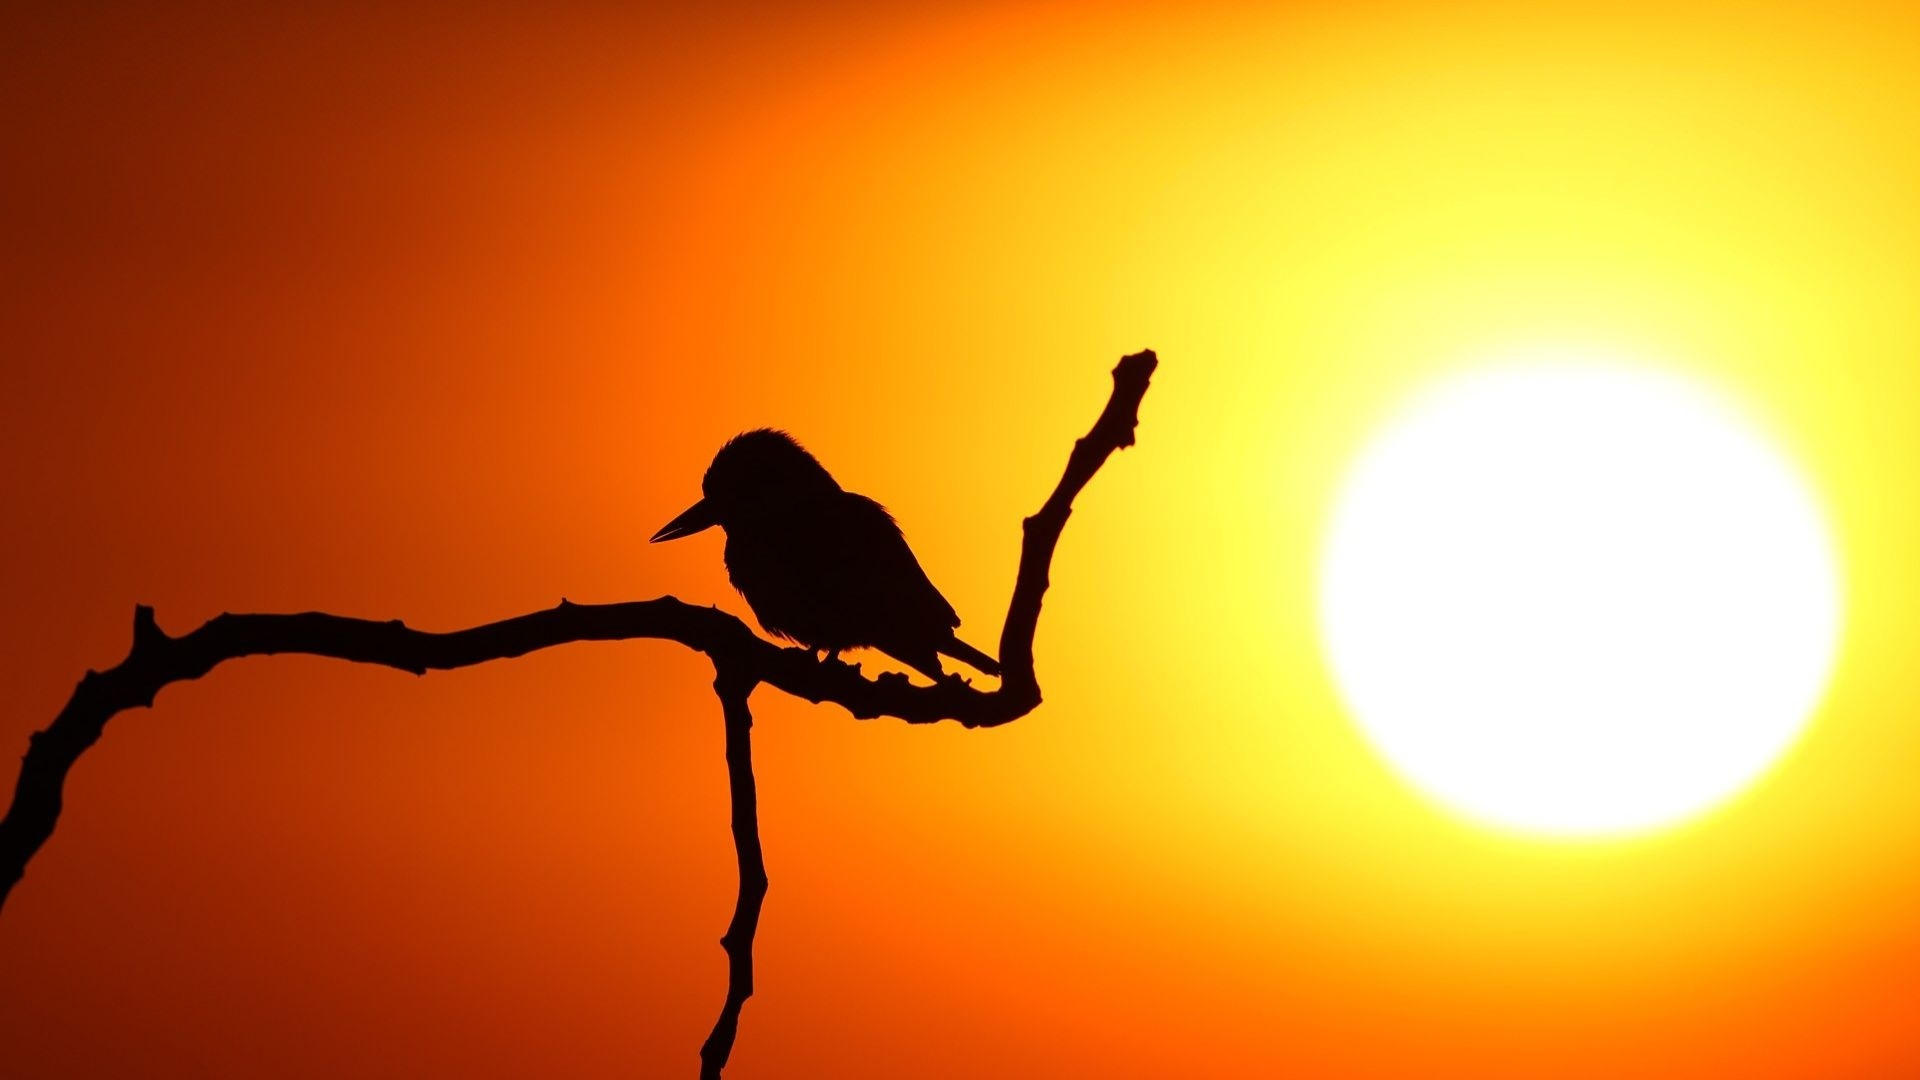 a sunrise on the veld short In the short story a sunrise on the veld, doris lessing highlights a little boy who went on a hunt and discovered dying buck causing him to see that death can't be controlled or conquered by him.